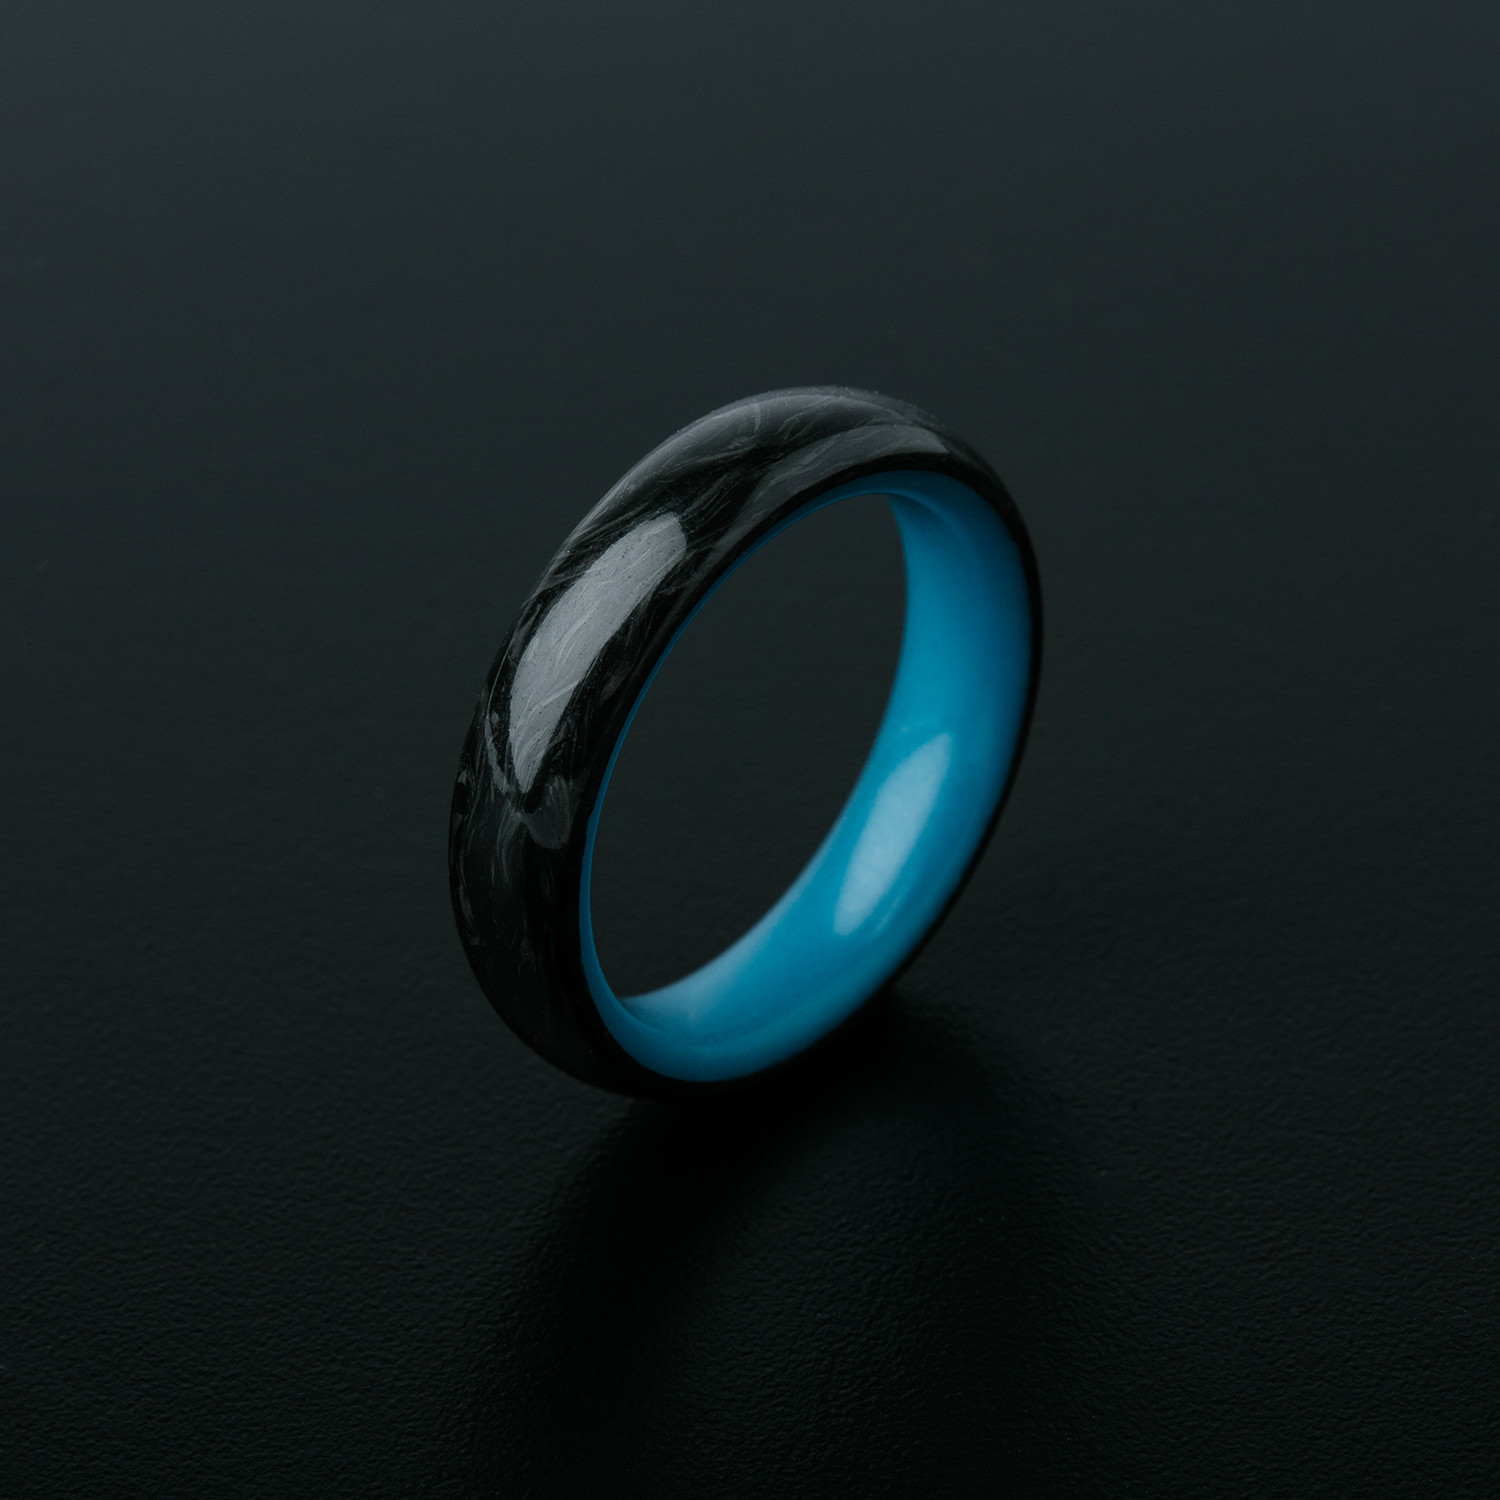 rings lume behance gallery on